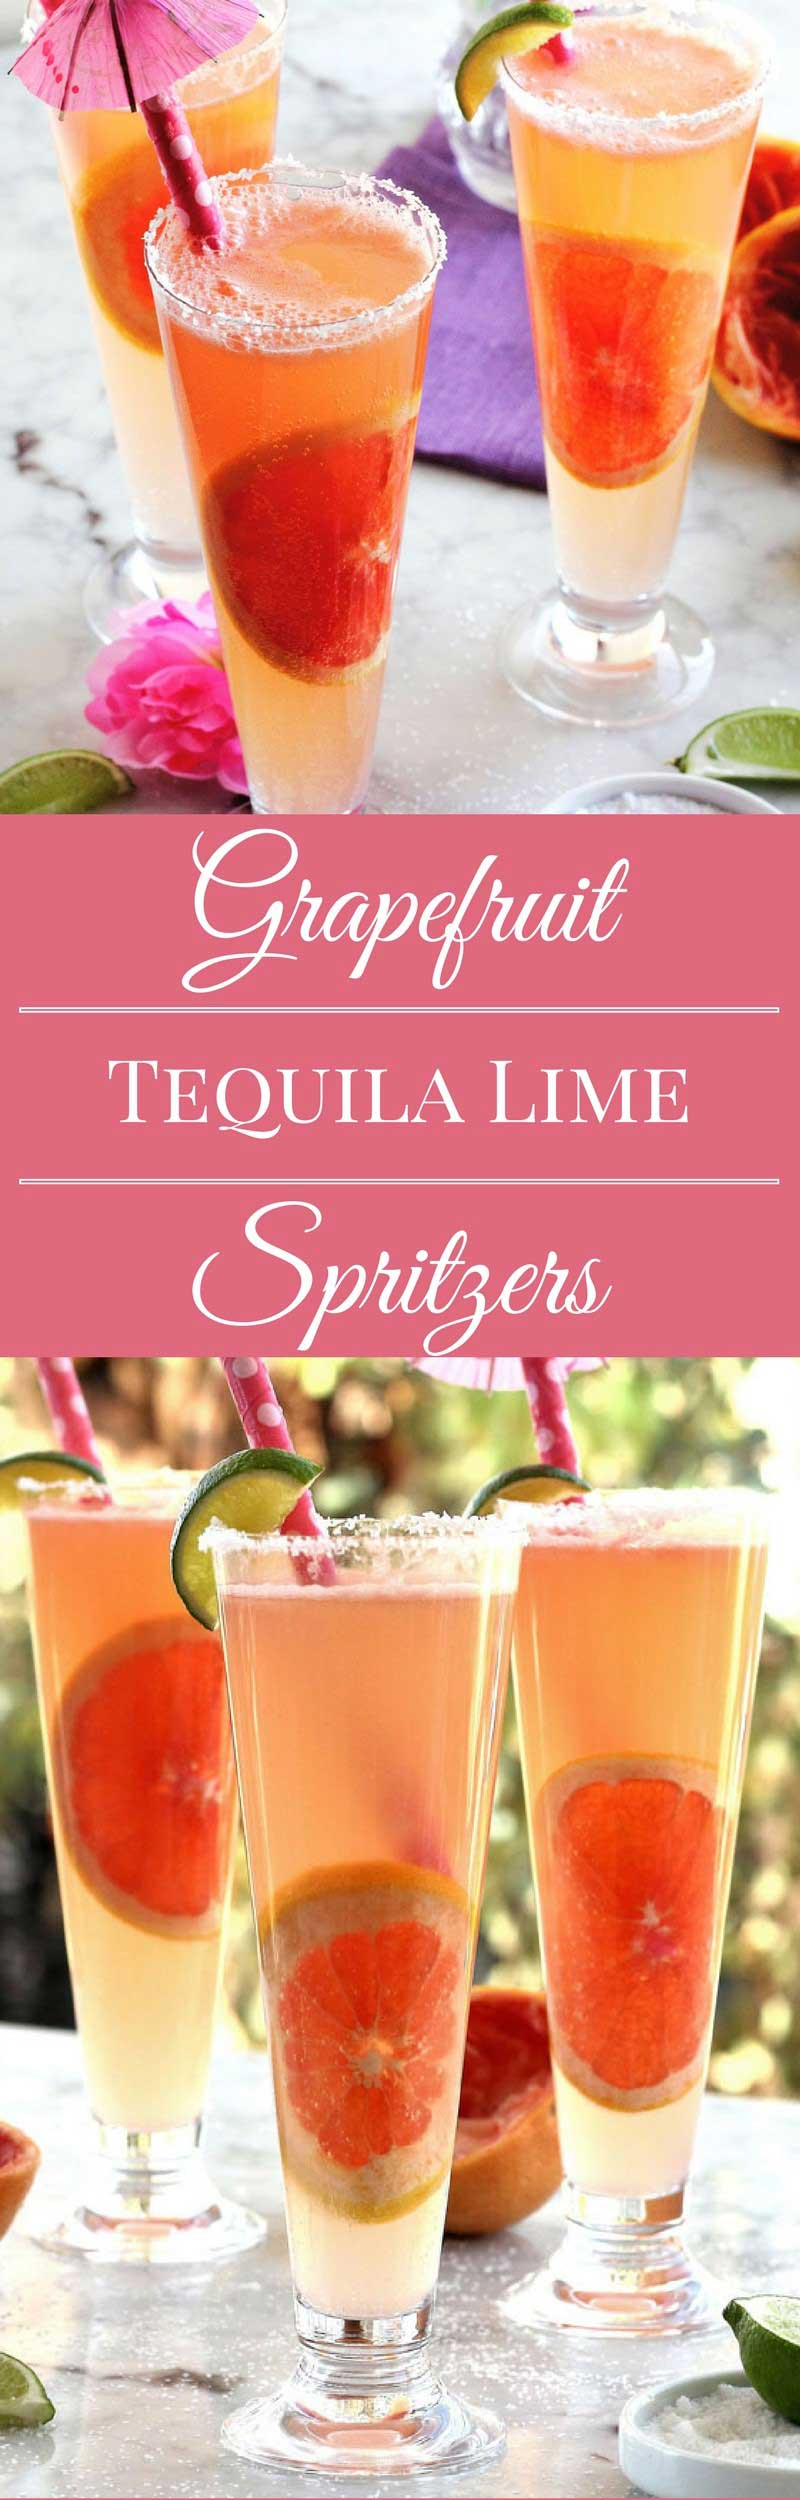 Tequila Lime Spritzer Cinco de Mayo Summer refreshing drink